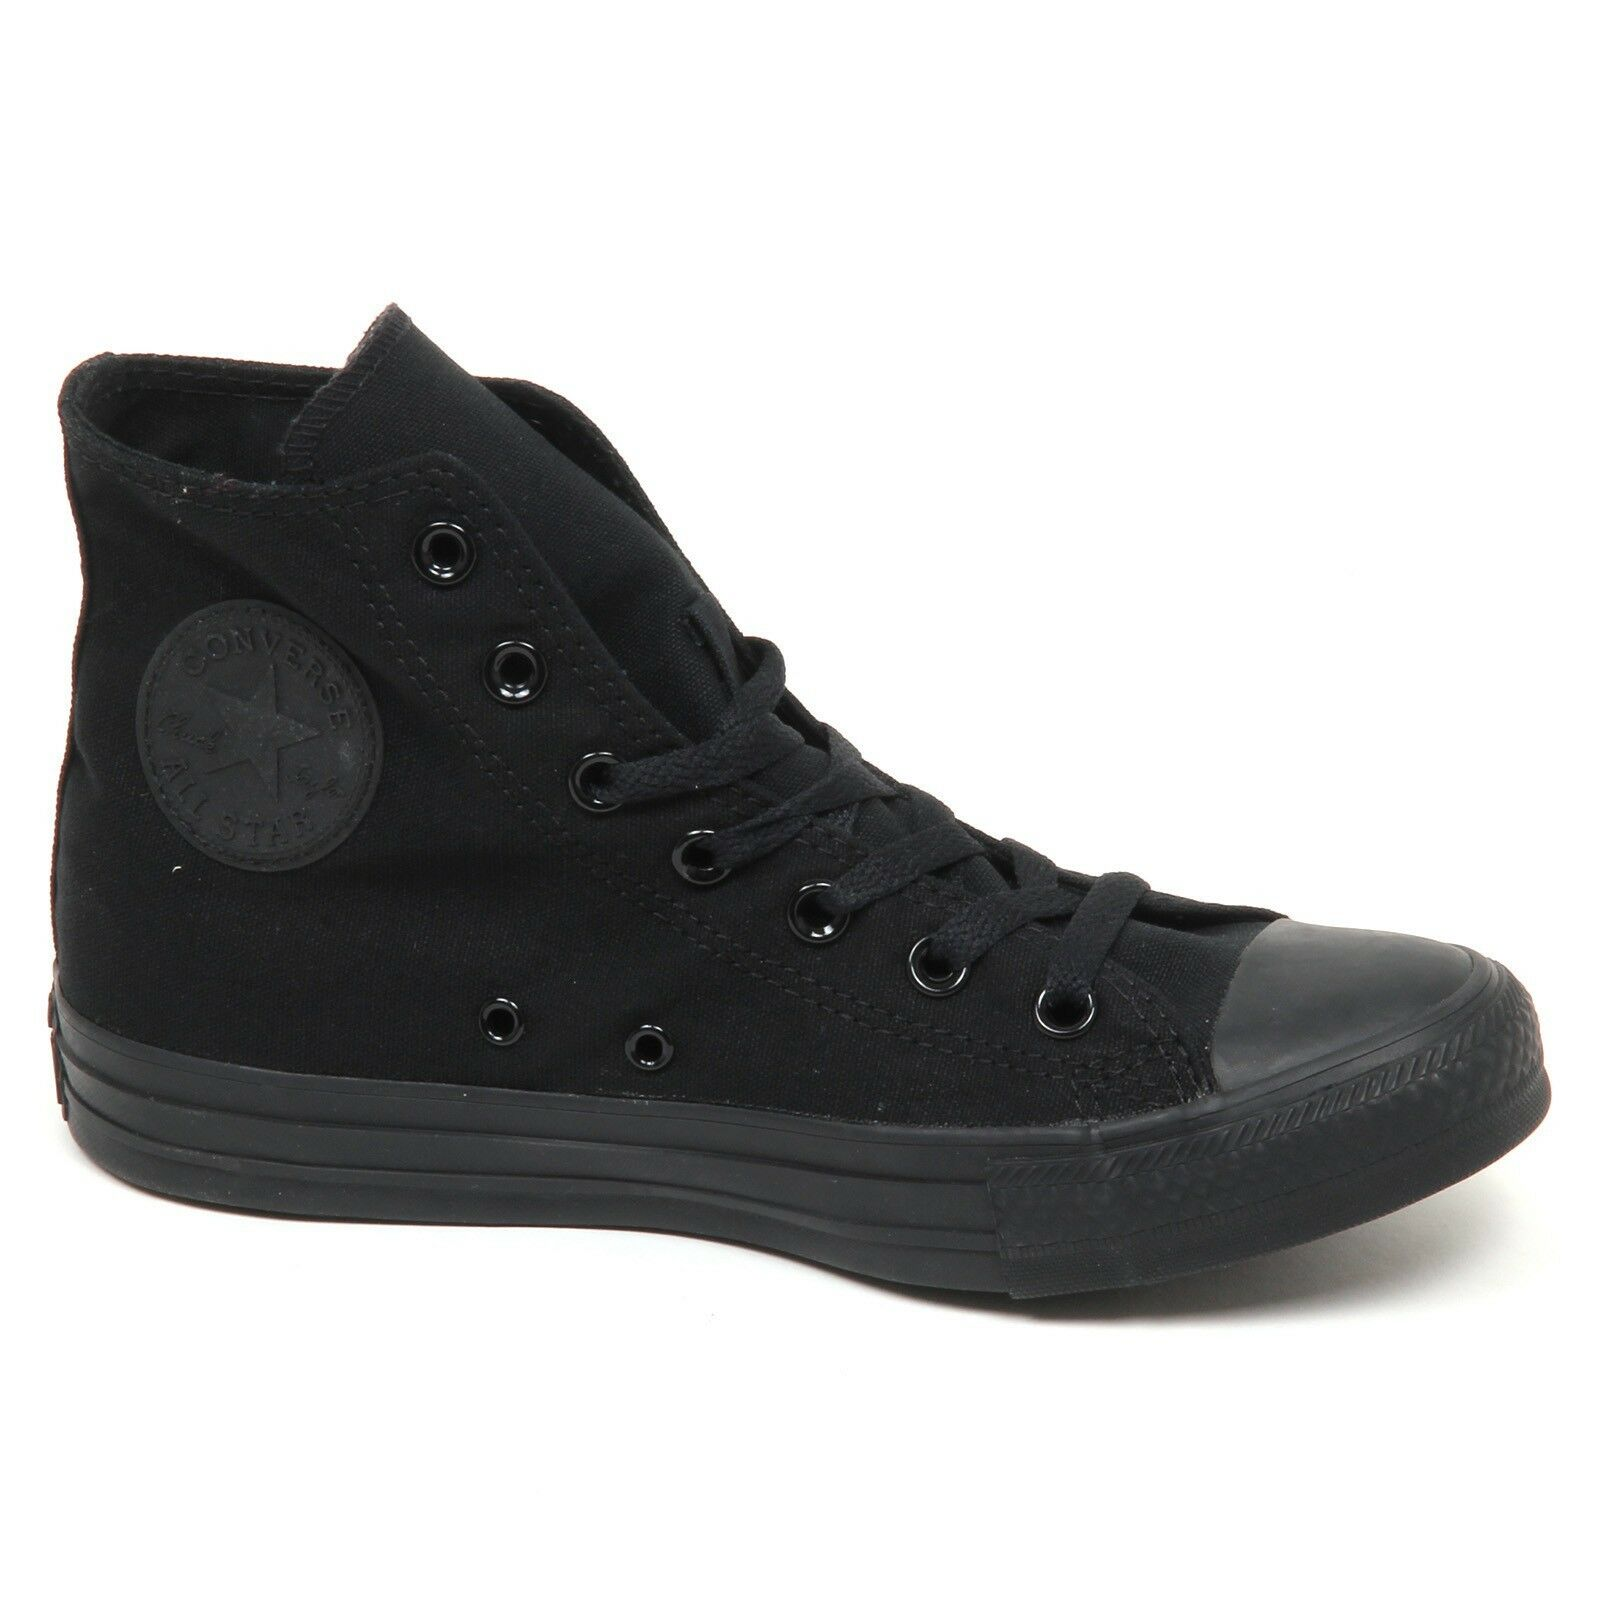 E3940 sneaker unisex CONVERS woman ALL STAR MONOCHROME schwarz shoe woman CONVERS man 2ab4ed